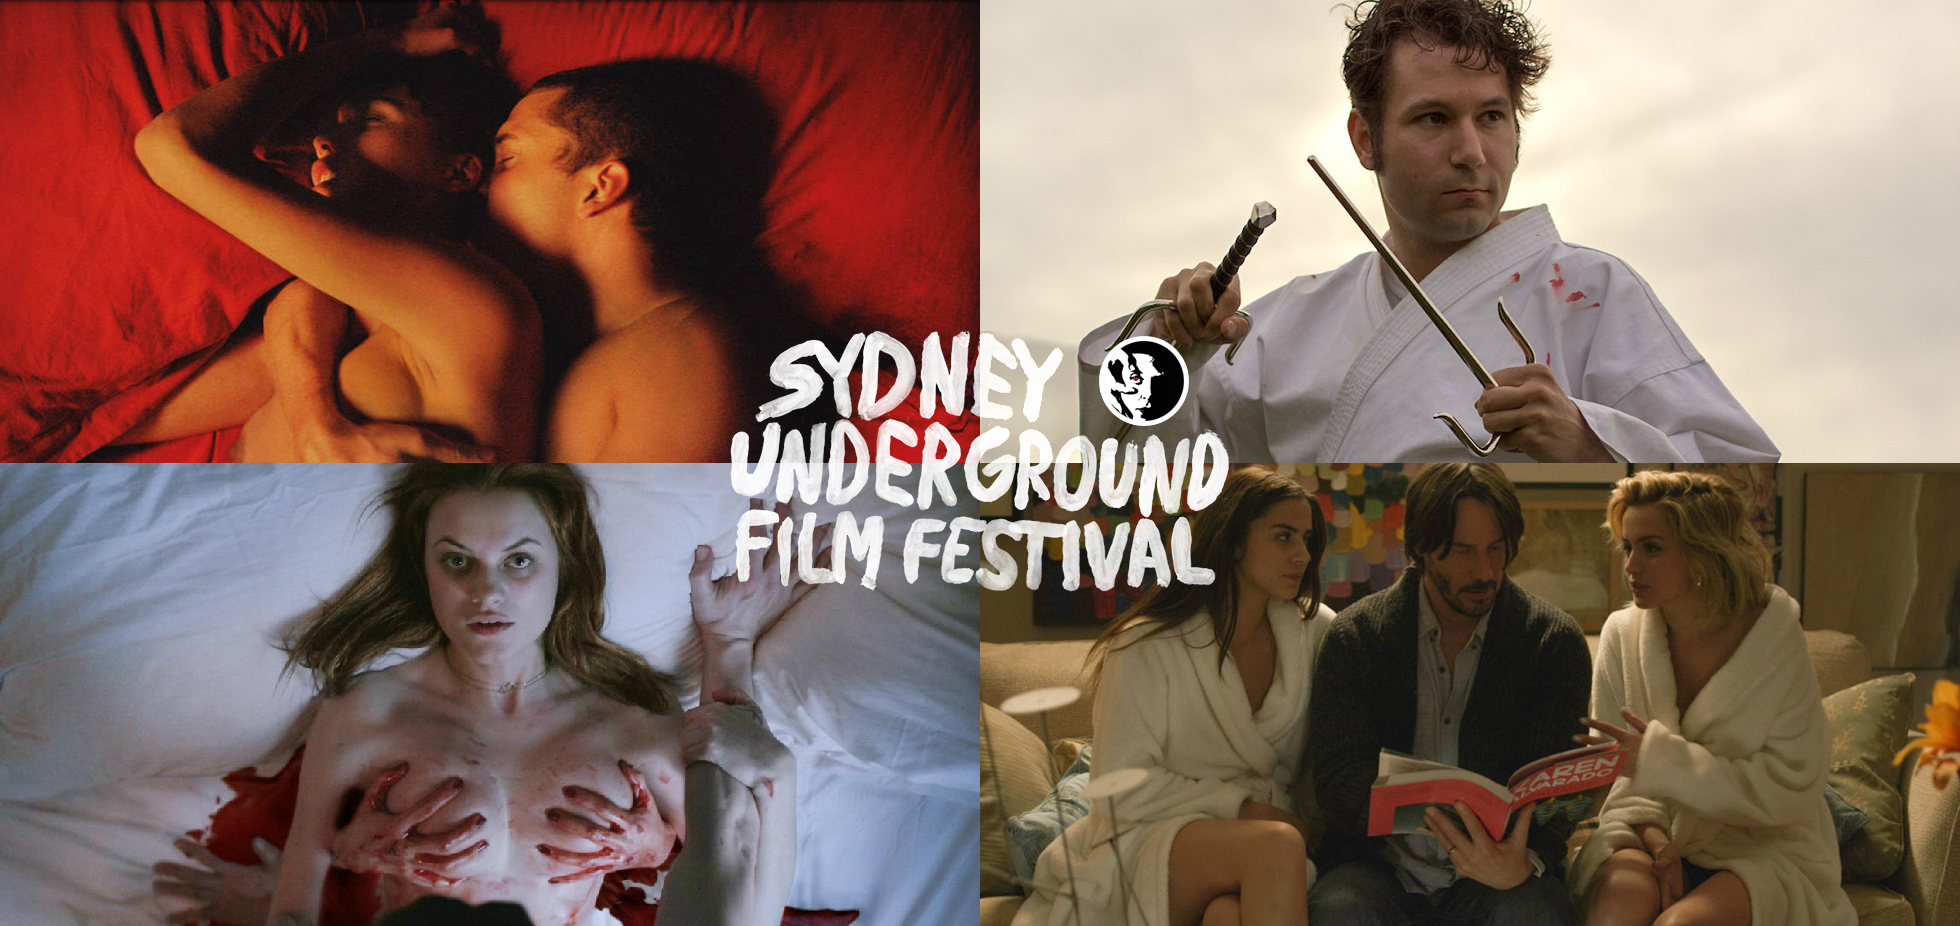 9th Sydney Underground Film Festival announced featuring Roth, Noé, Dead Girlfriends & Cannibal Cops